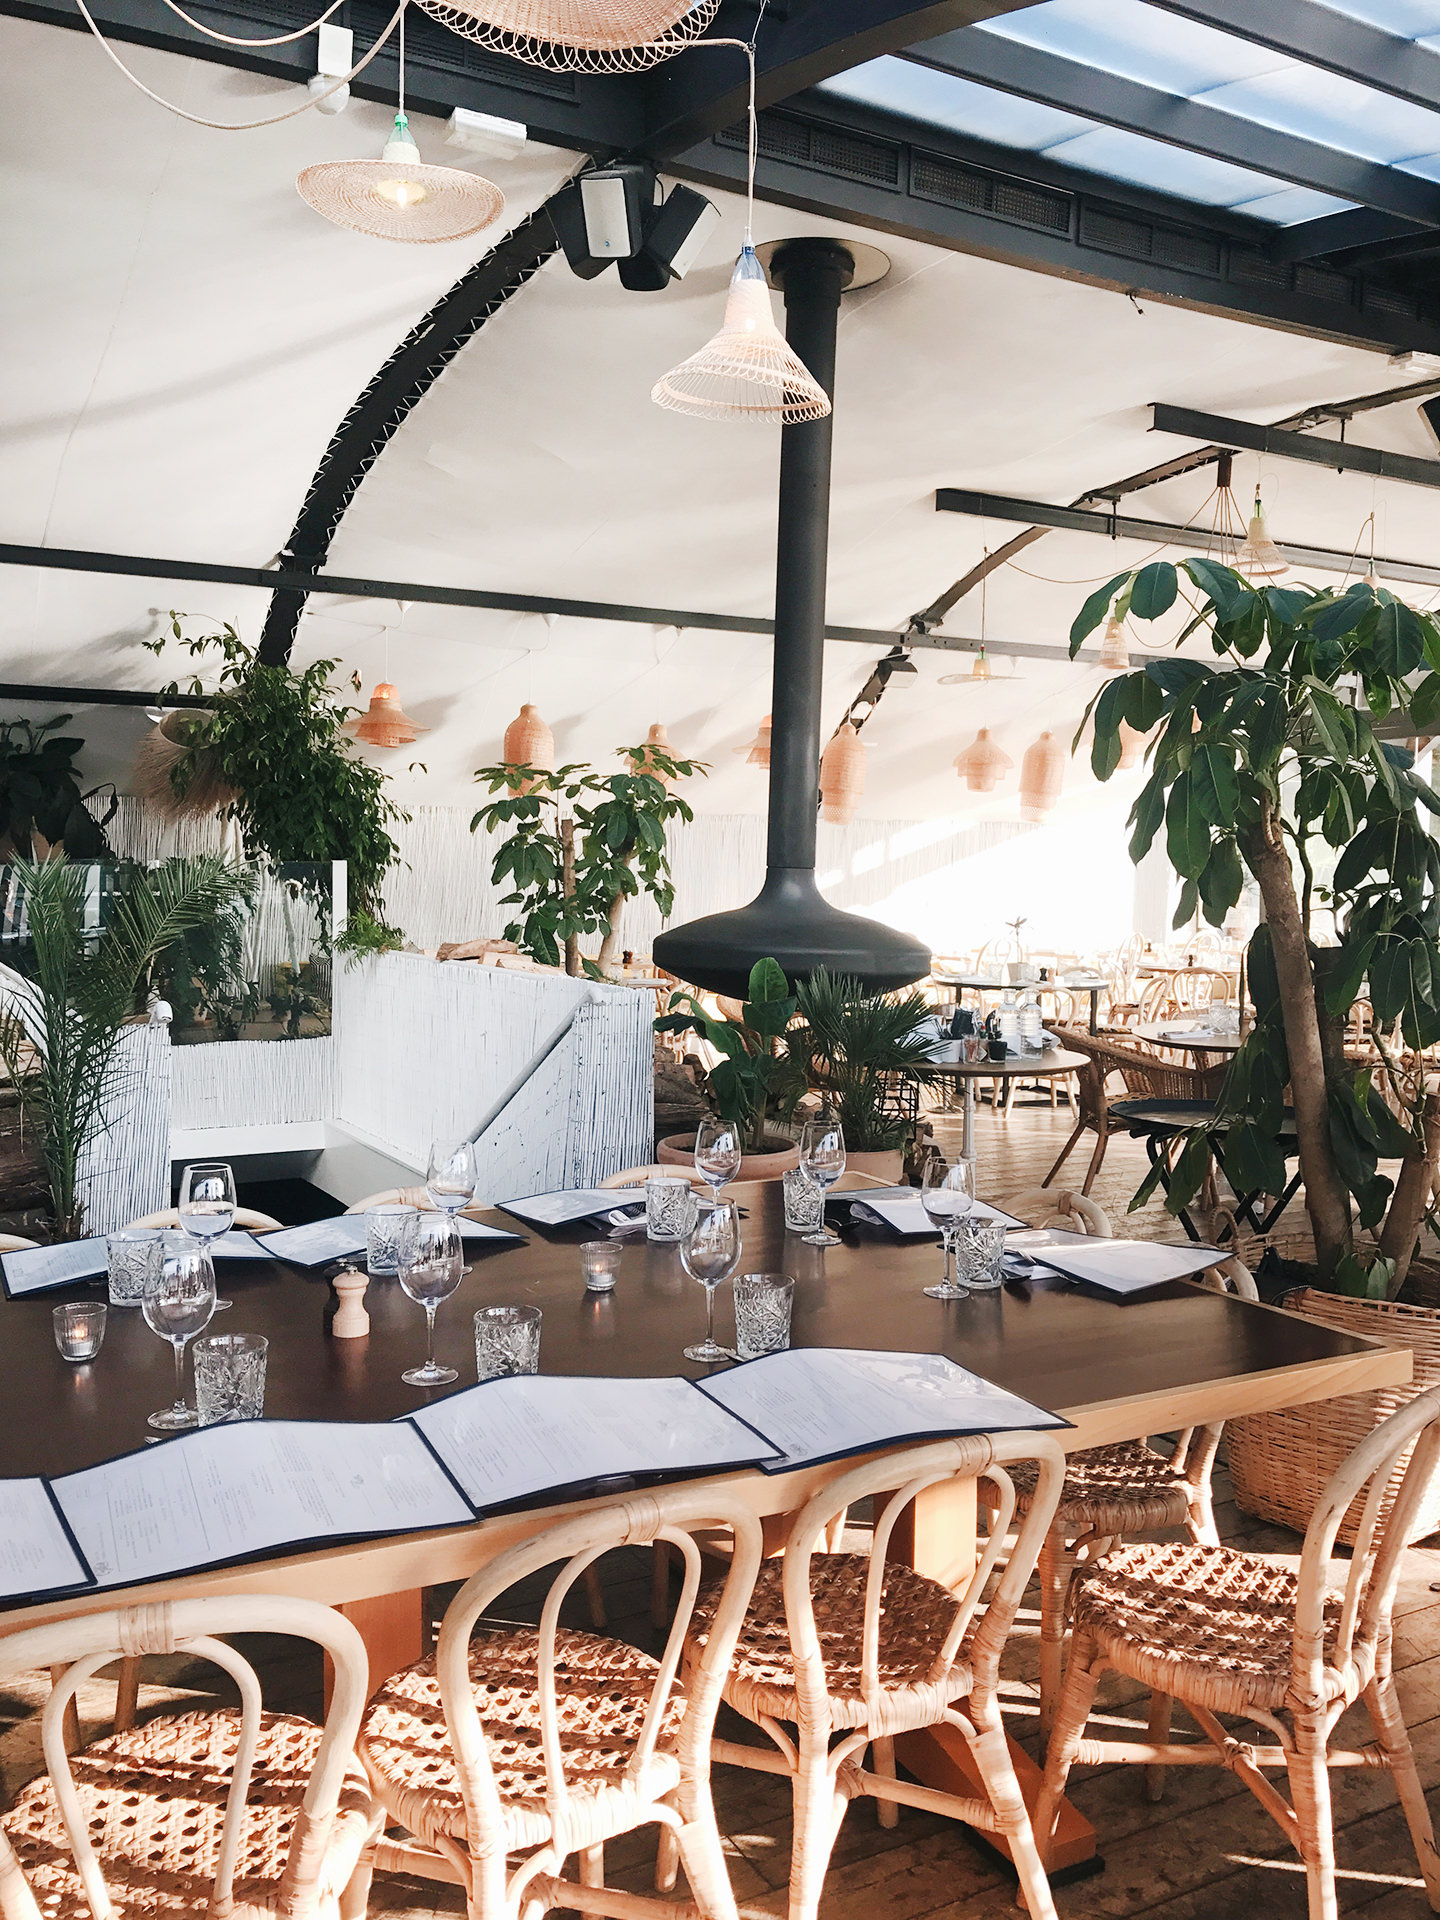 Blog-Mode-And-The-City-Lifestyle-Cnq-Petites-Choses-228-Polpo-restaurant